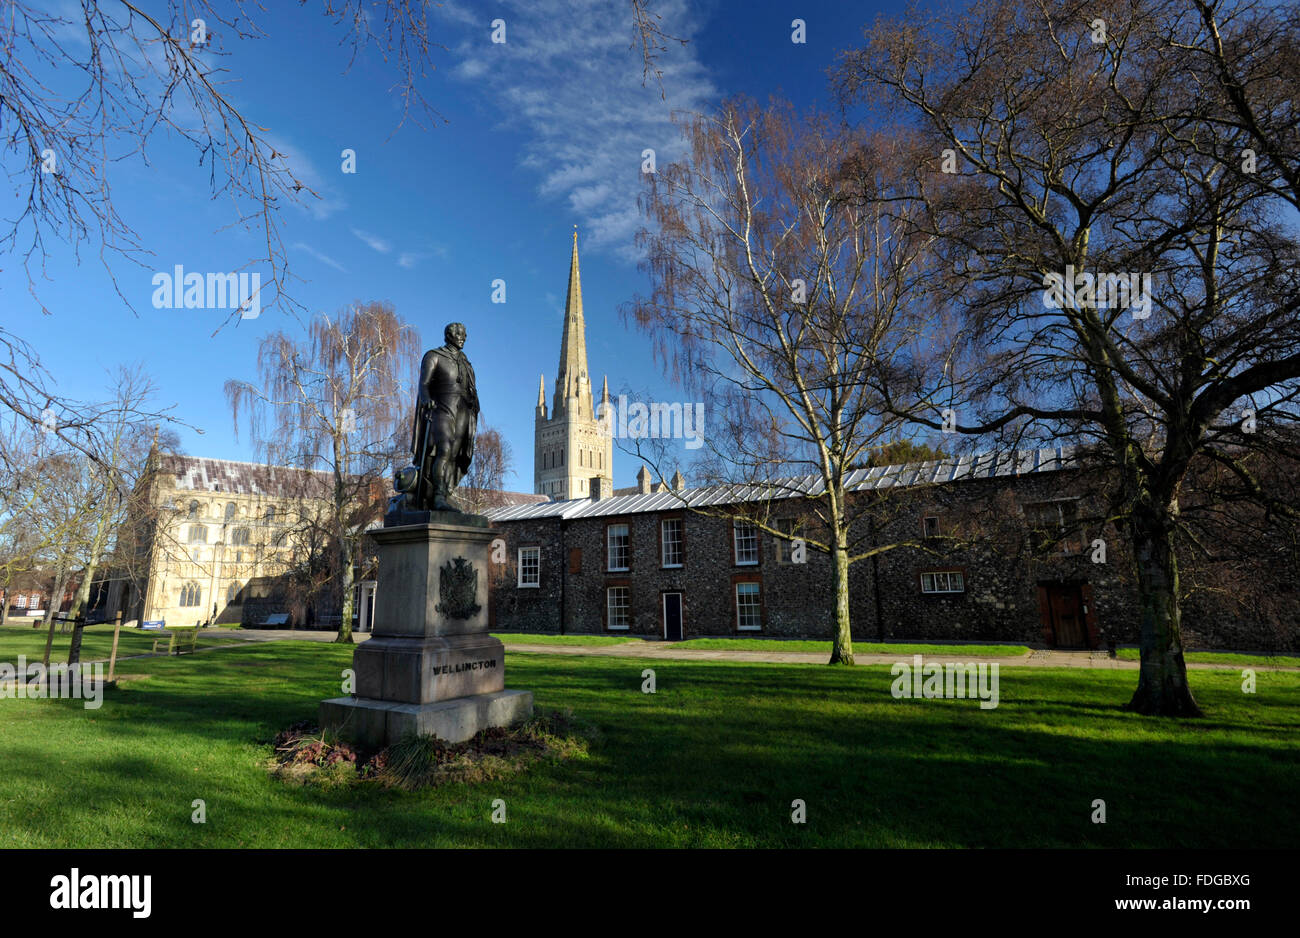 Norwich Cathedral and statue in the grounds dedicated to the Duke of Wellington, Norfolk, UK. - Stock Image